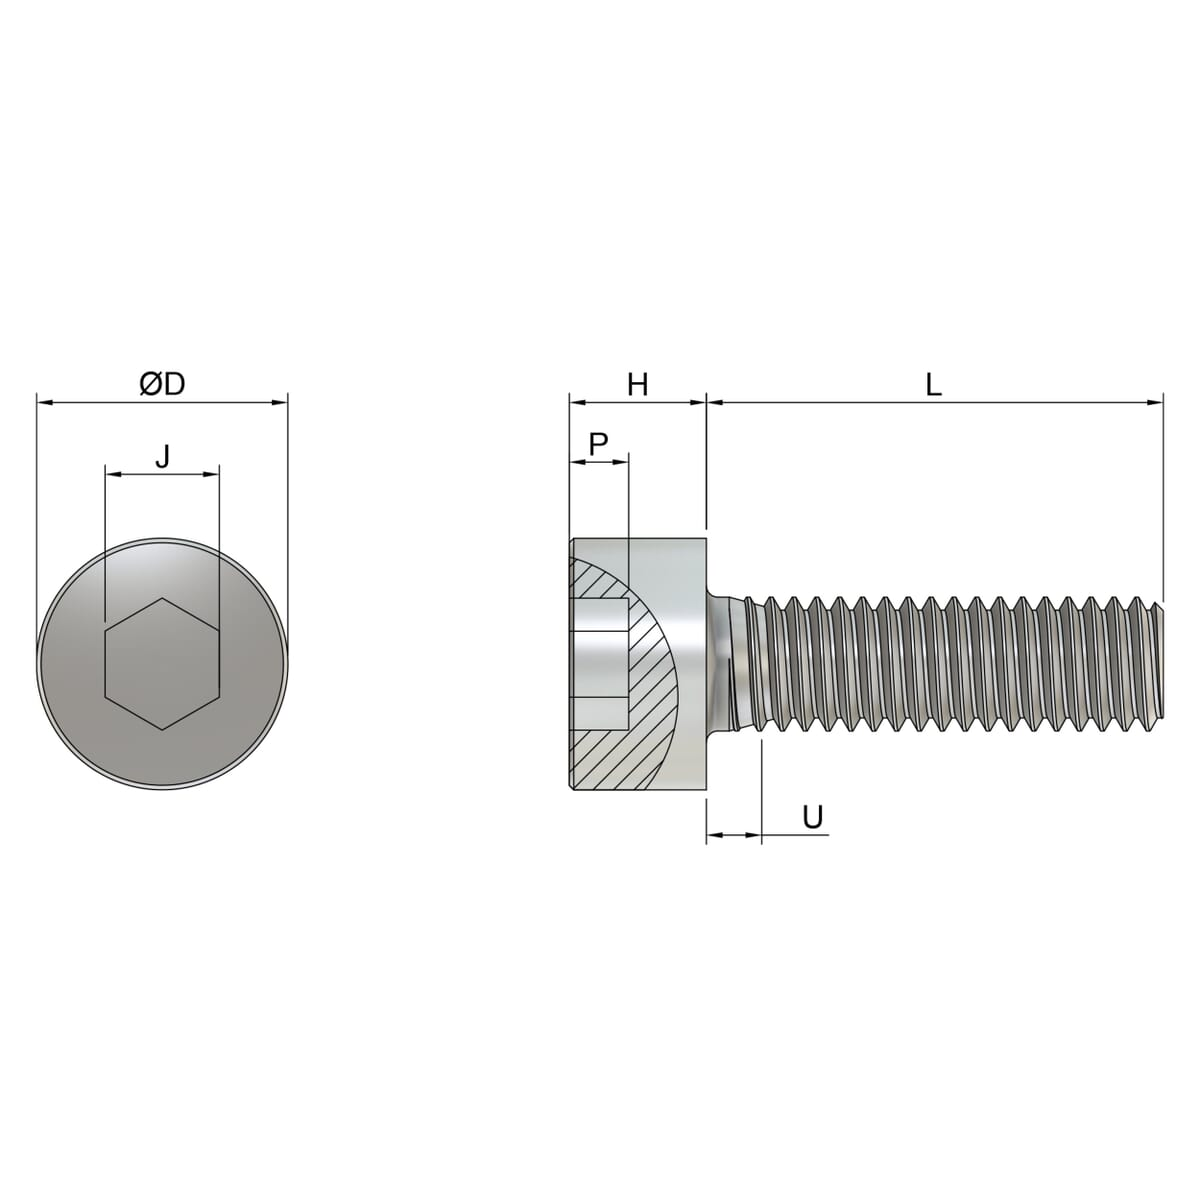 M10 x 12mm Full Thread Cap Head Screws (DIN 912) - Marine Stainless Steel (A4) Drawing